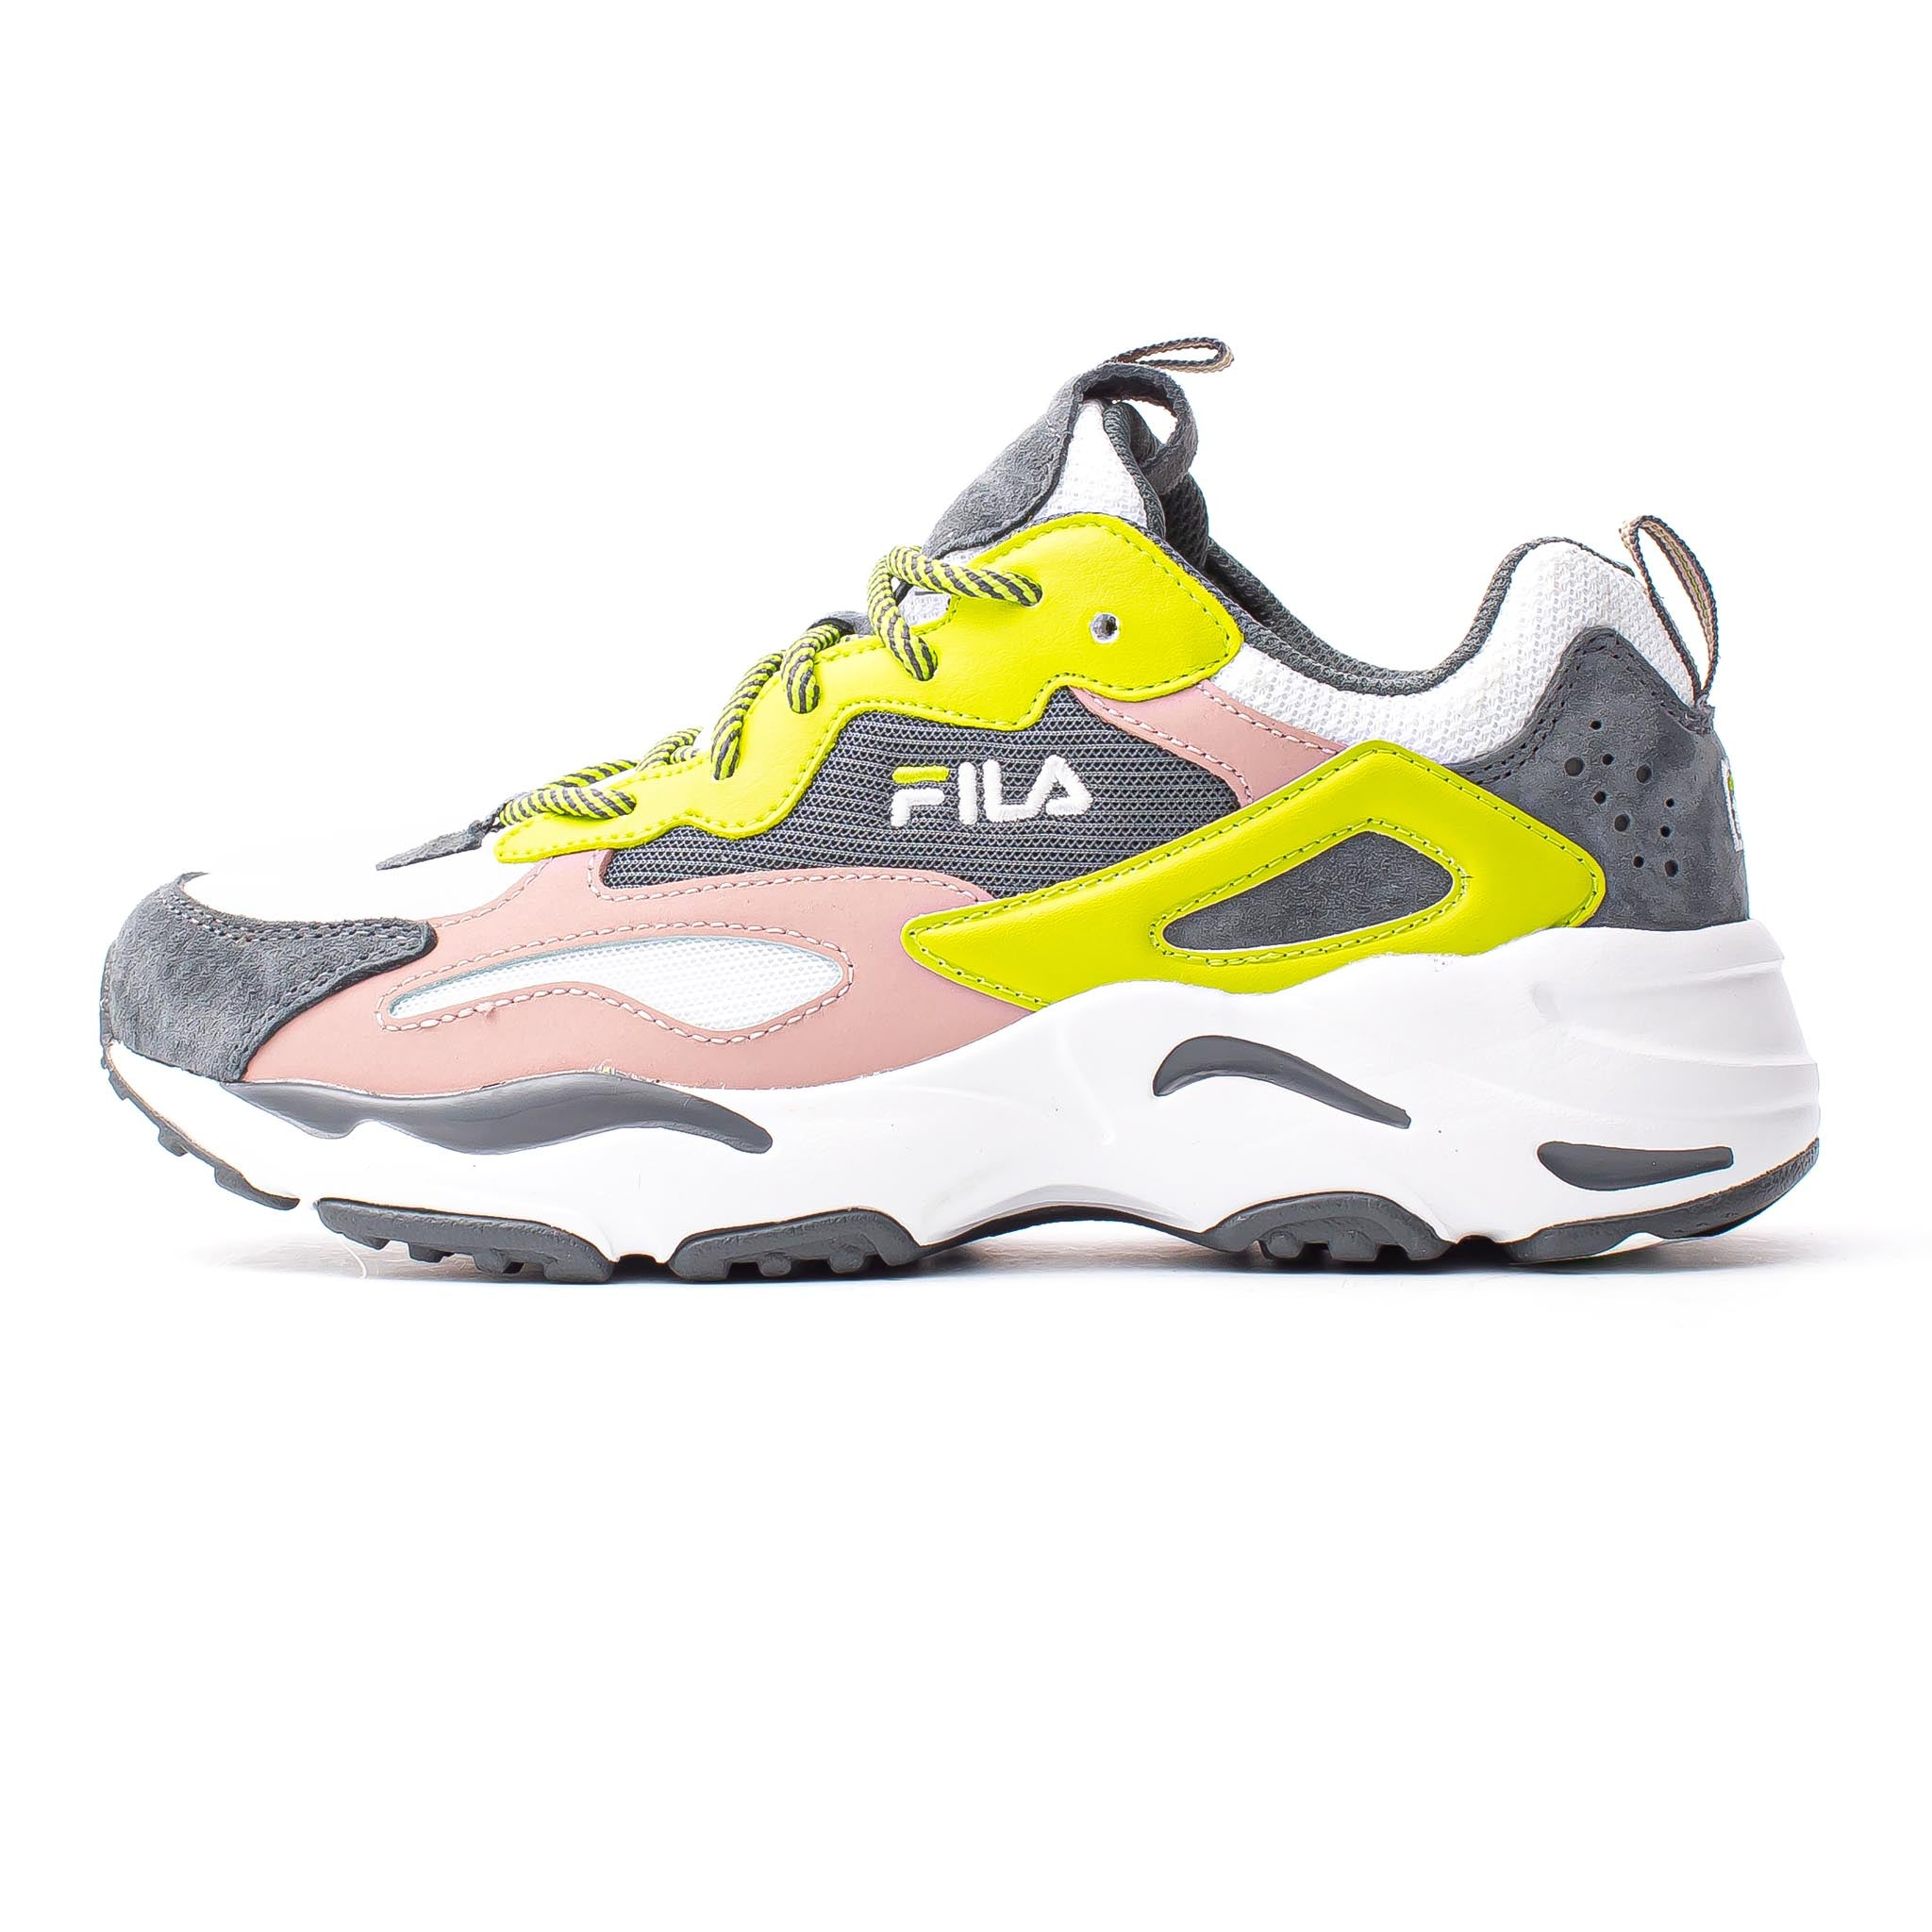 Fila Ray Tracer Grey/Lime